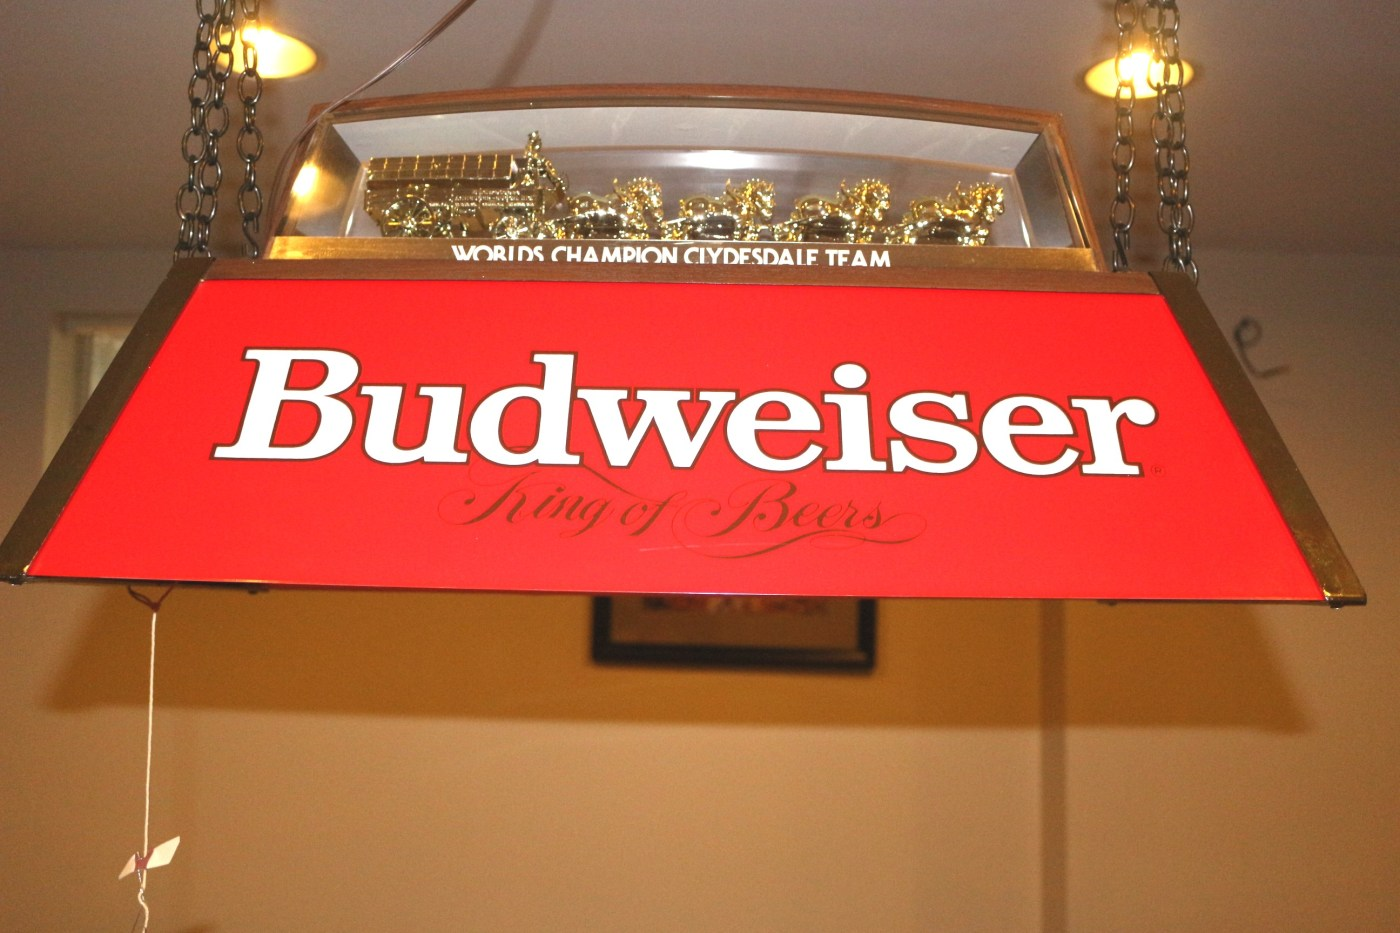 Budweiser Clydesdale Pool Table Light Ebth